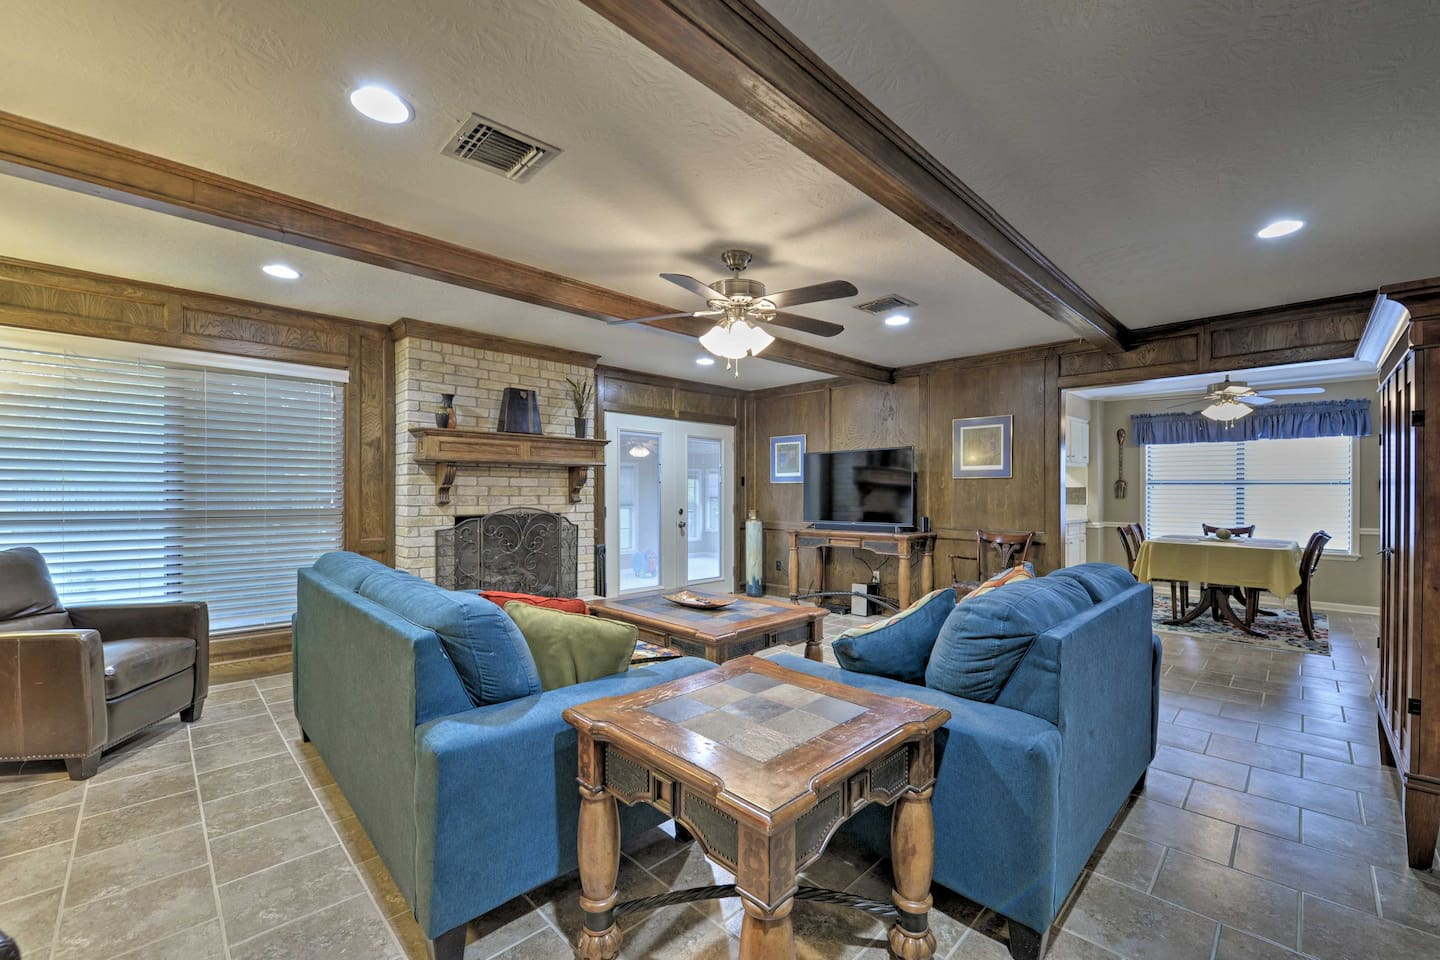 Stay at this bright Bryan home during your next visit to College Station!